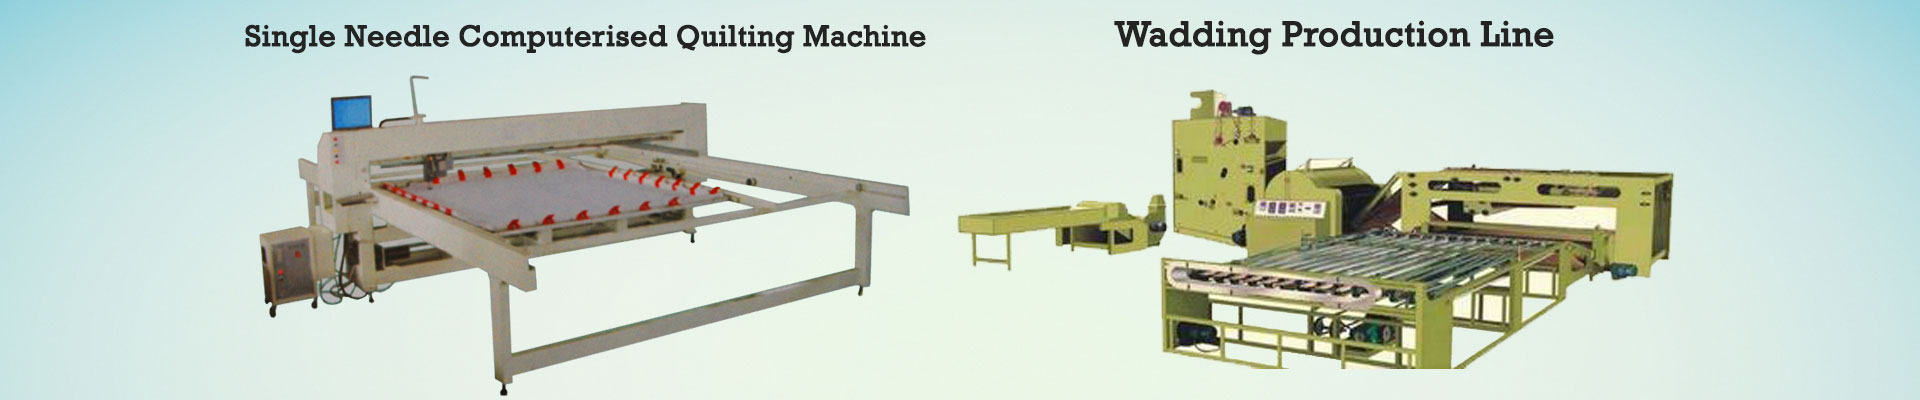 Wadding Production Line